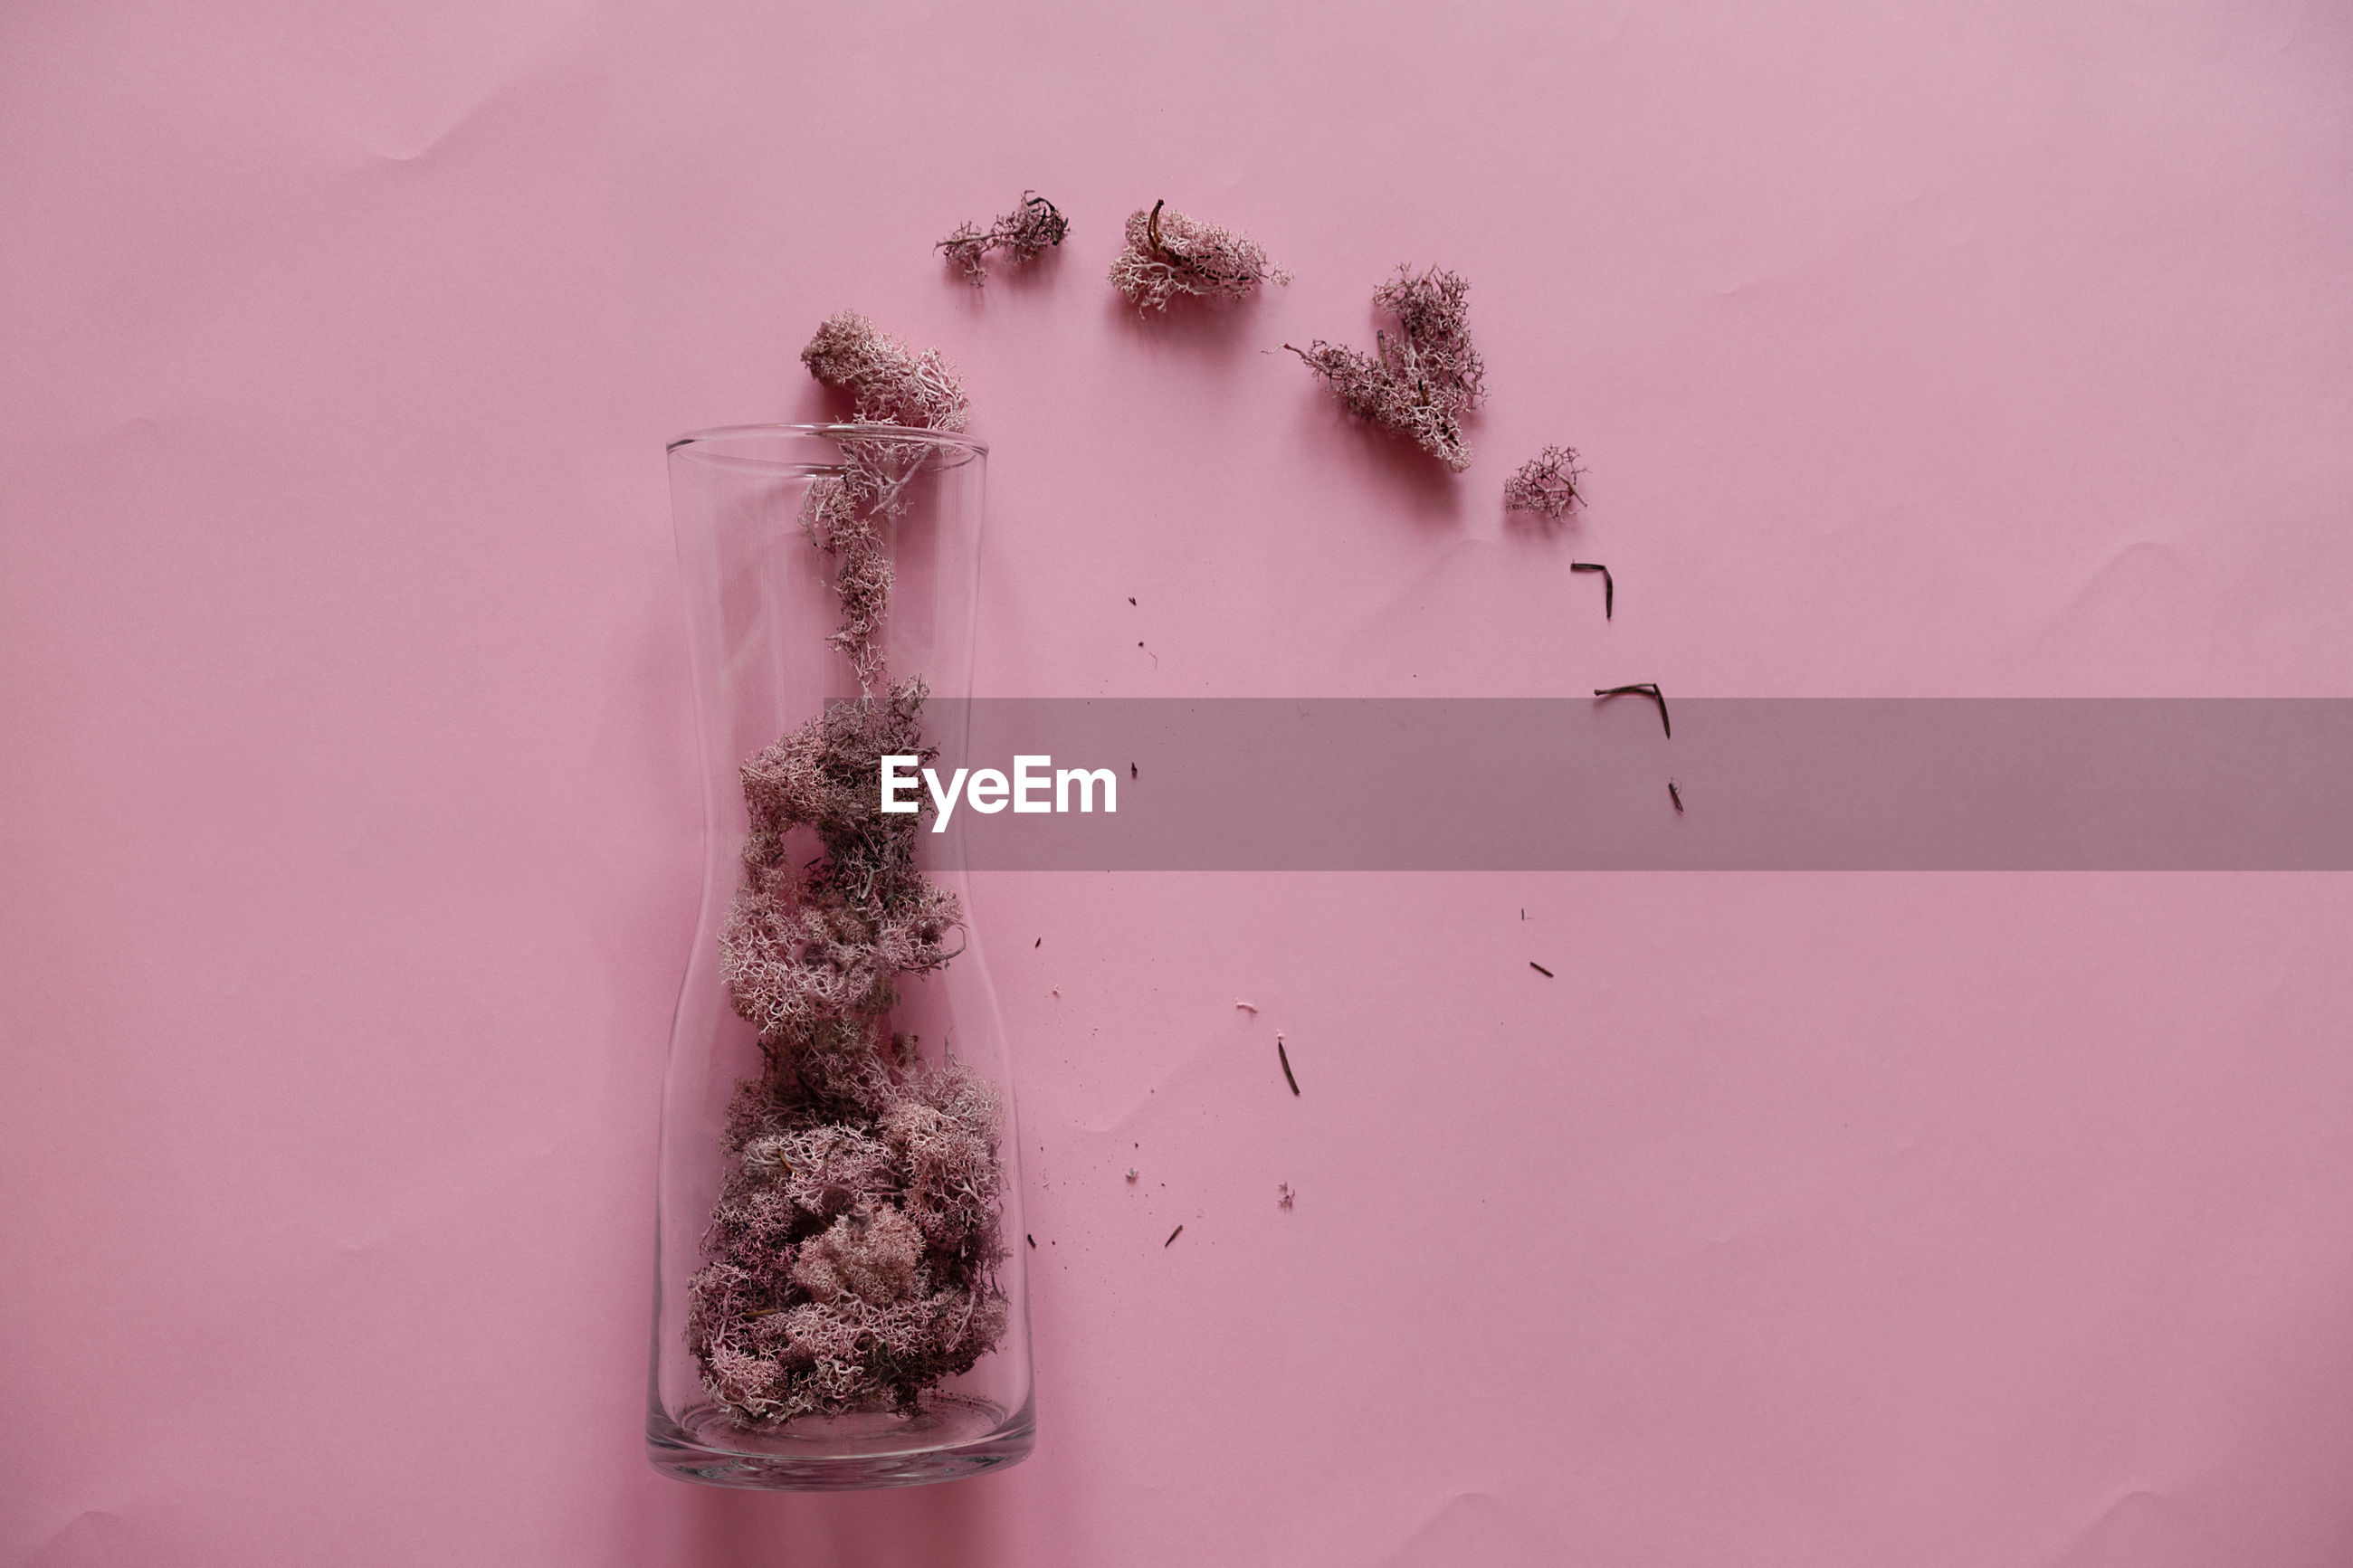 Close-up of dried plant in vase against pink background